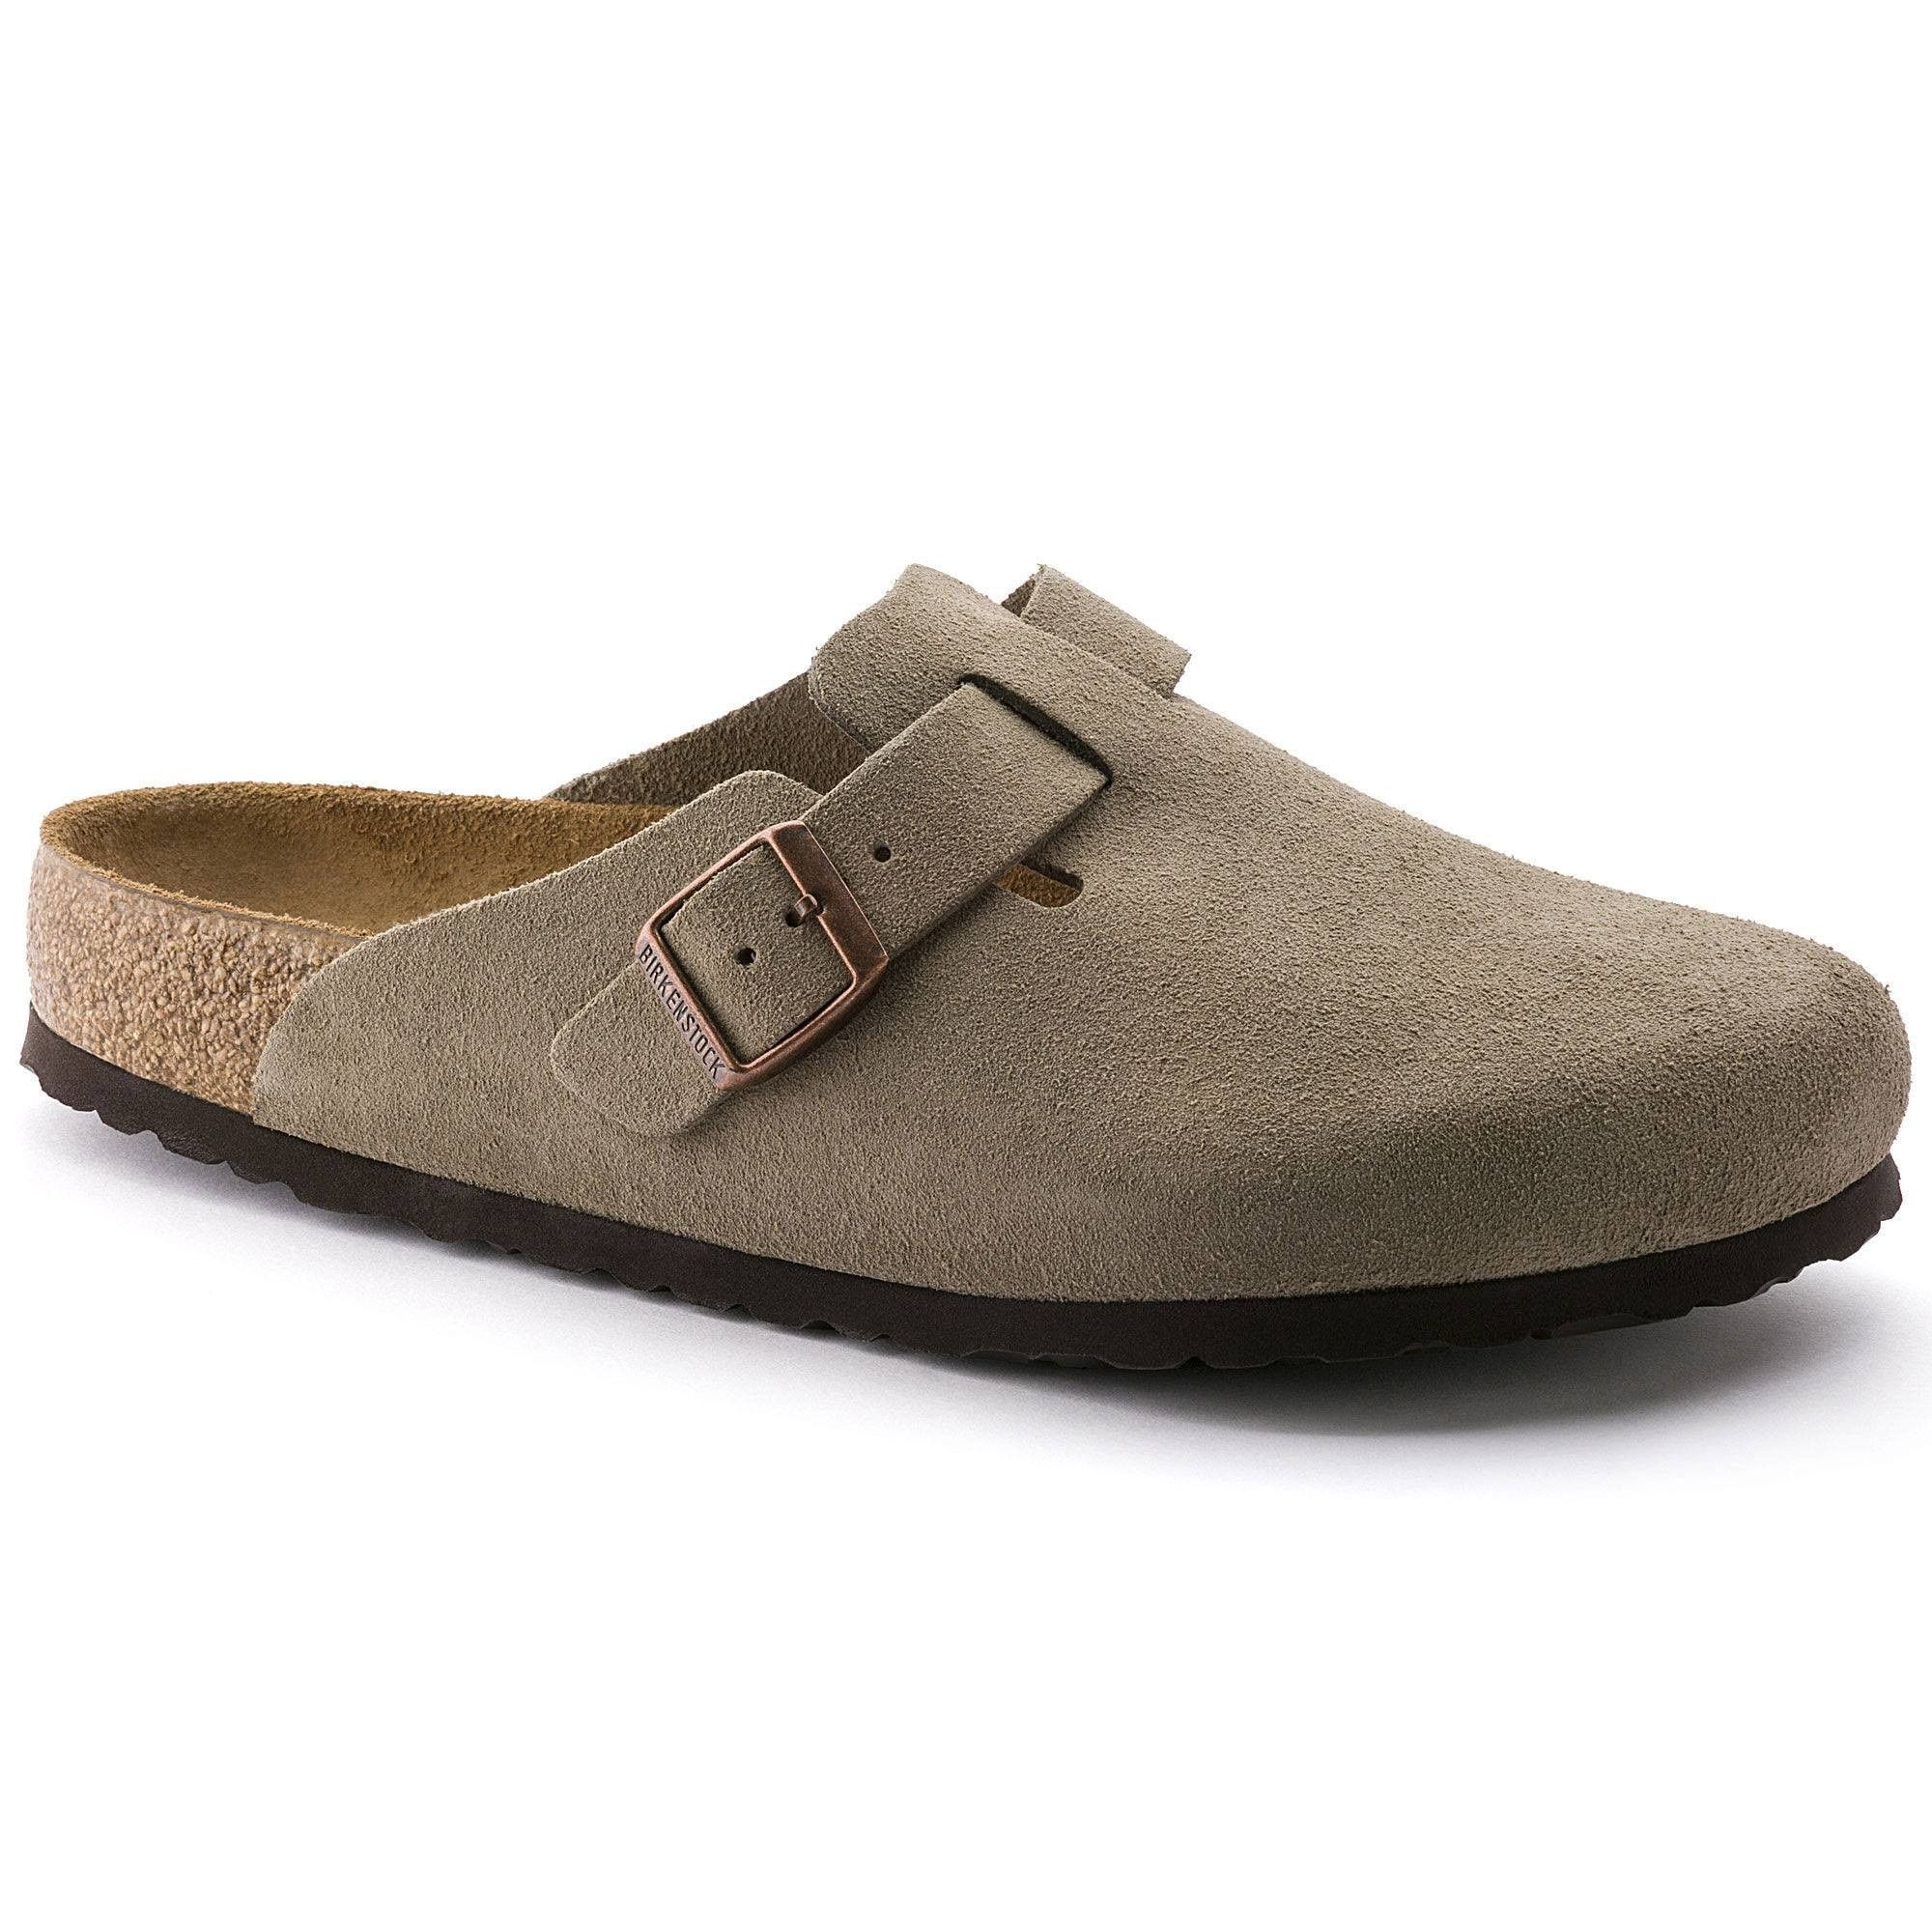 e654bdf3052d4 Birkenstock Women's Boston Soft Footbed Taupe Clogs (N) | Shoes ...